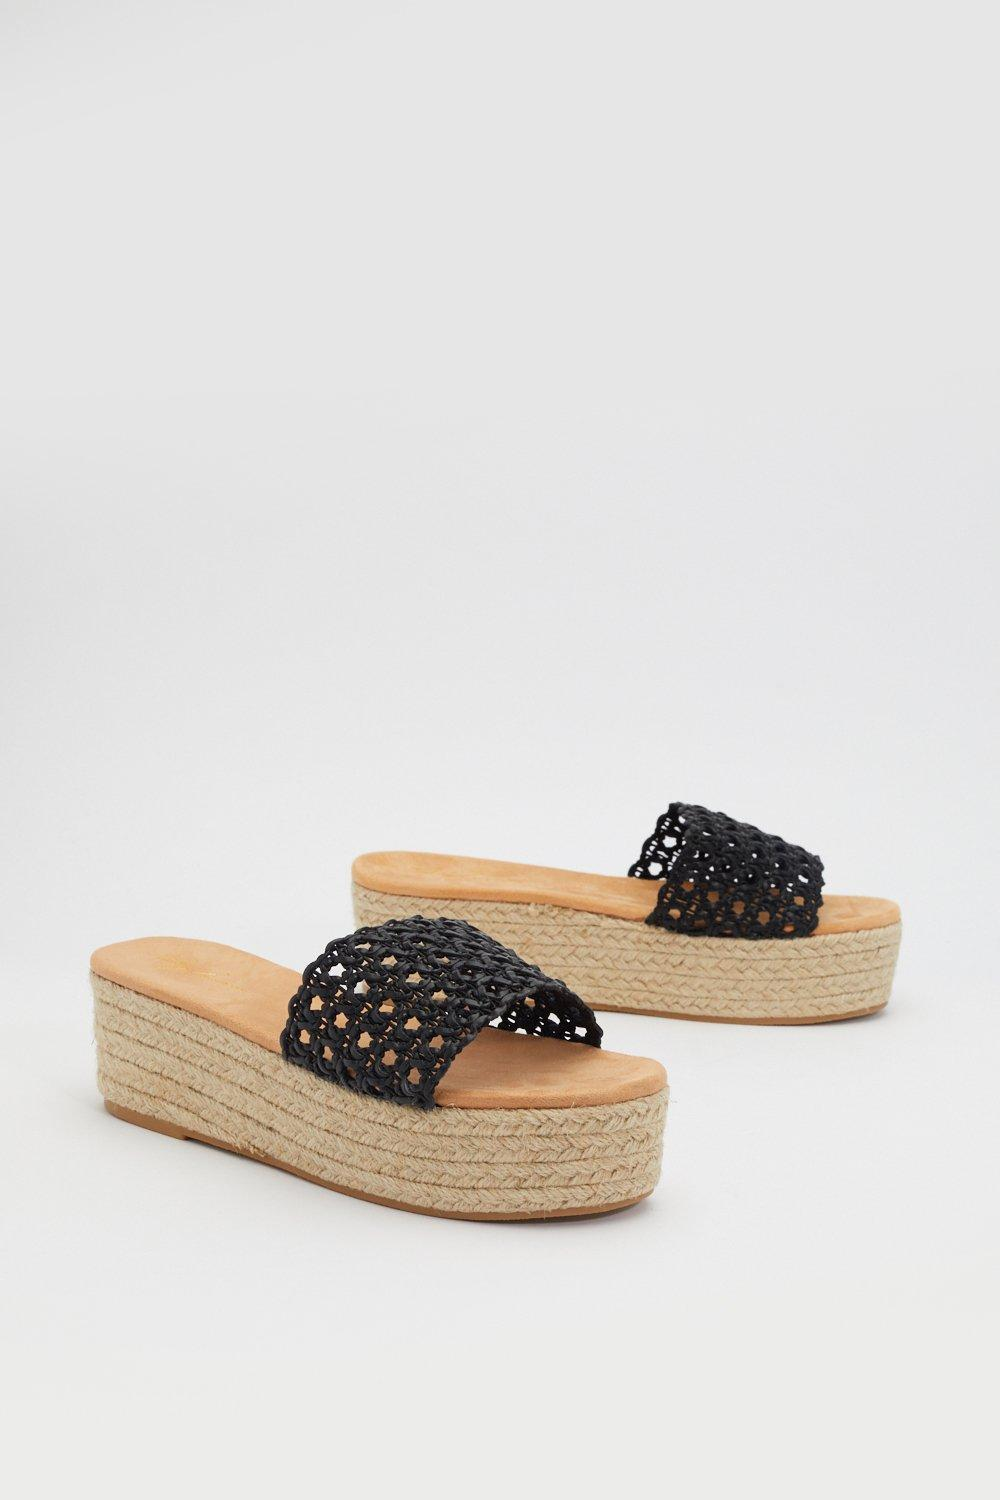 Espadrille It Home Weave Sliders by Nasty Gal